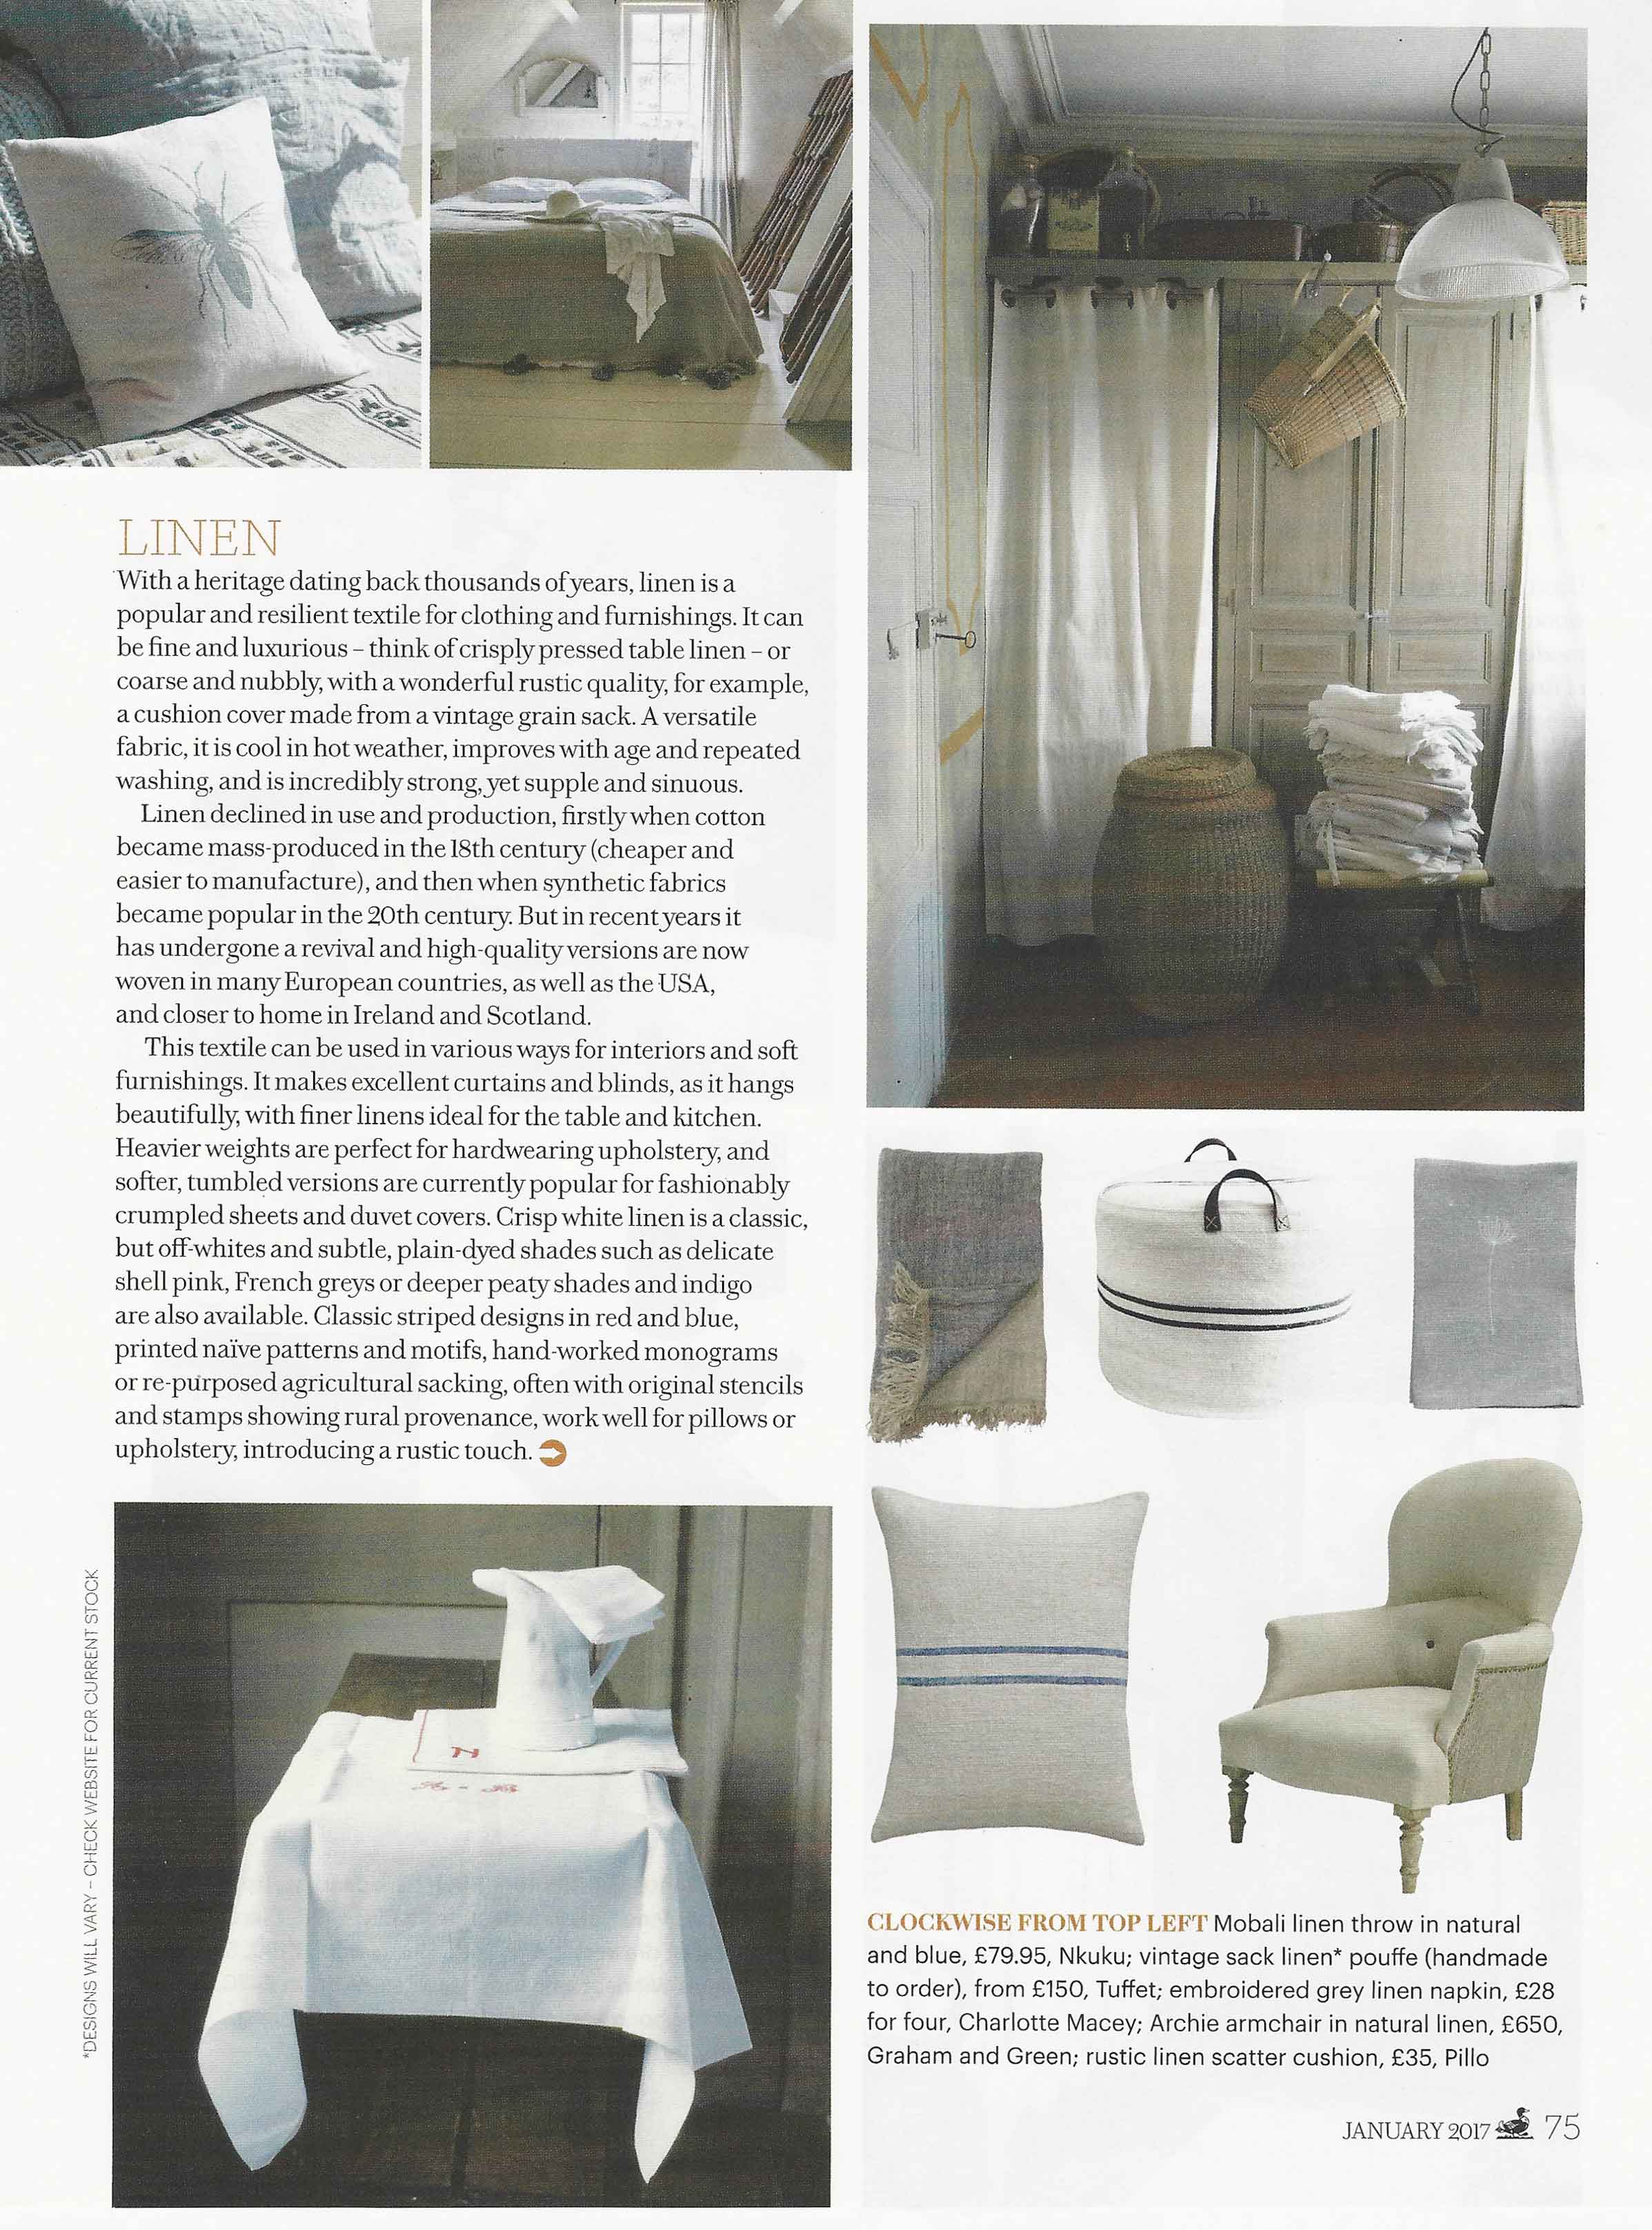 Pillo in Country Living - Press